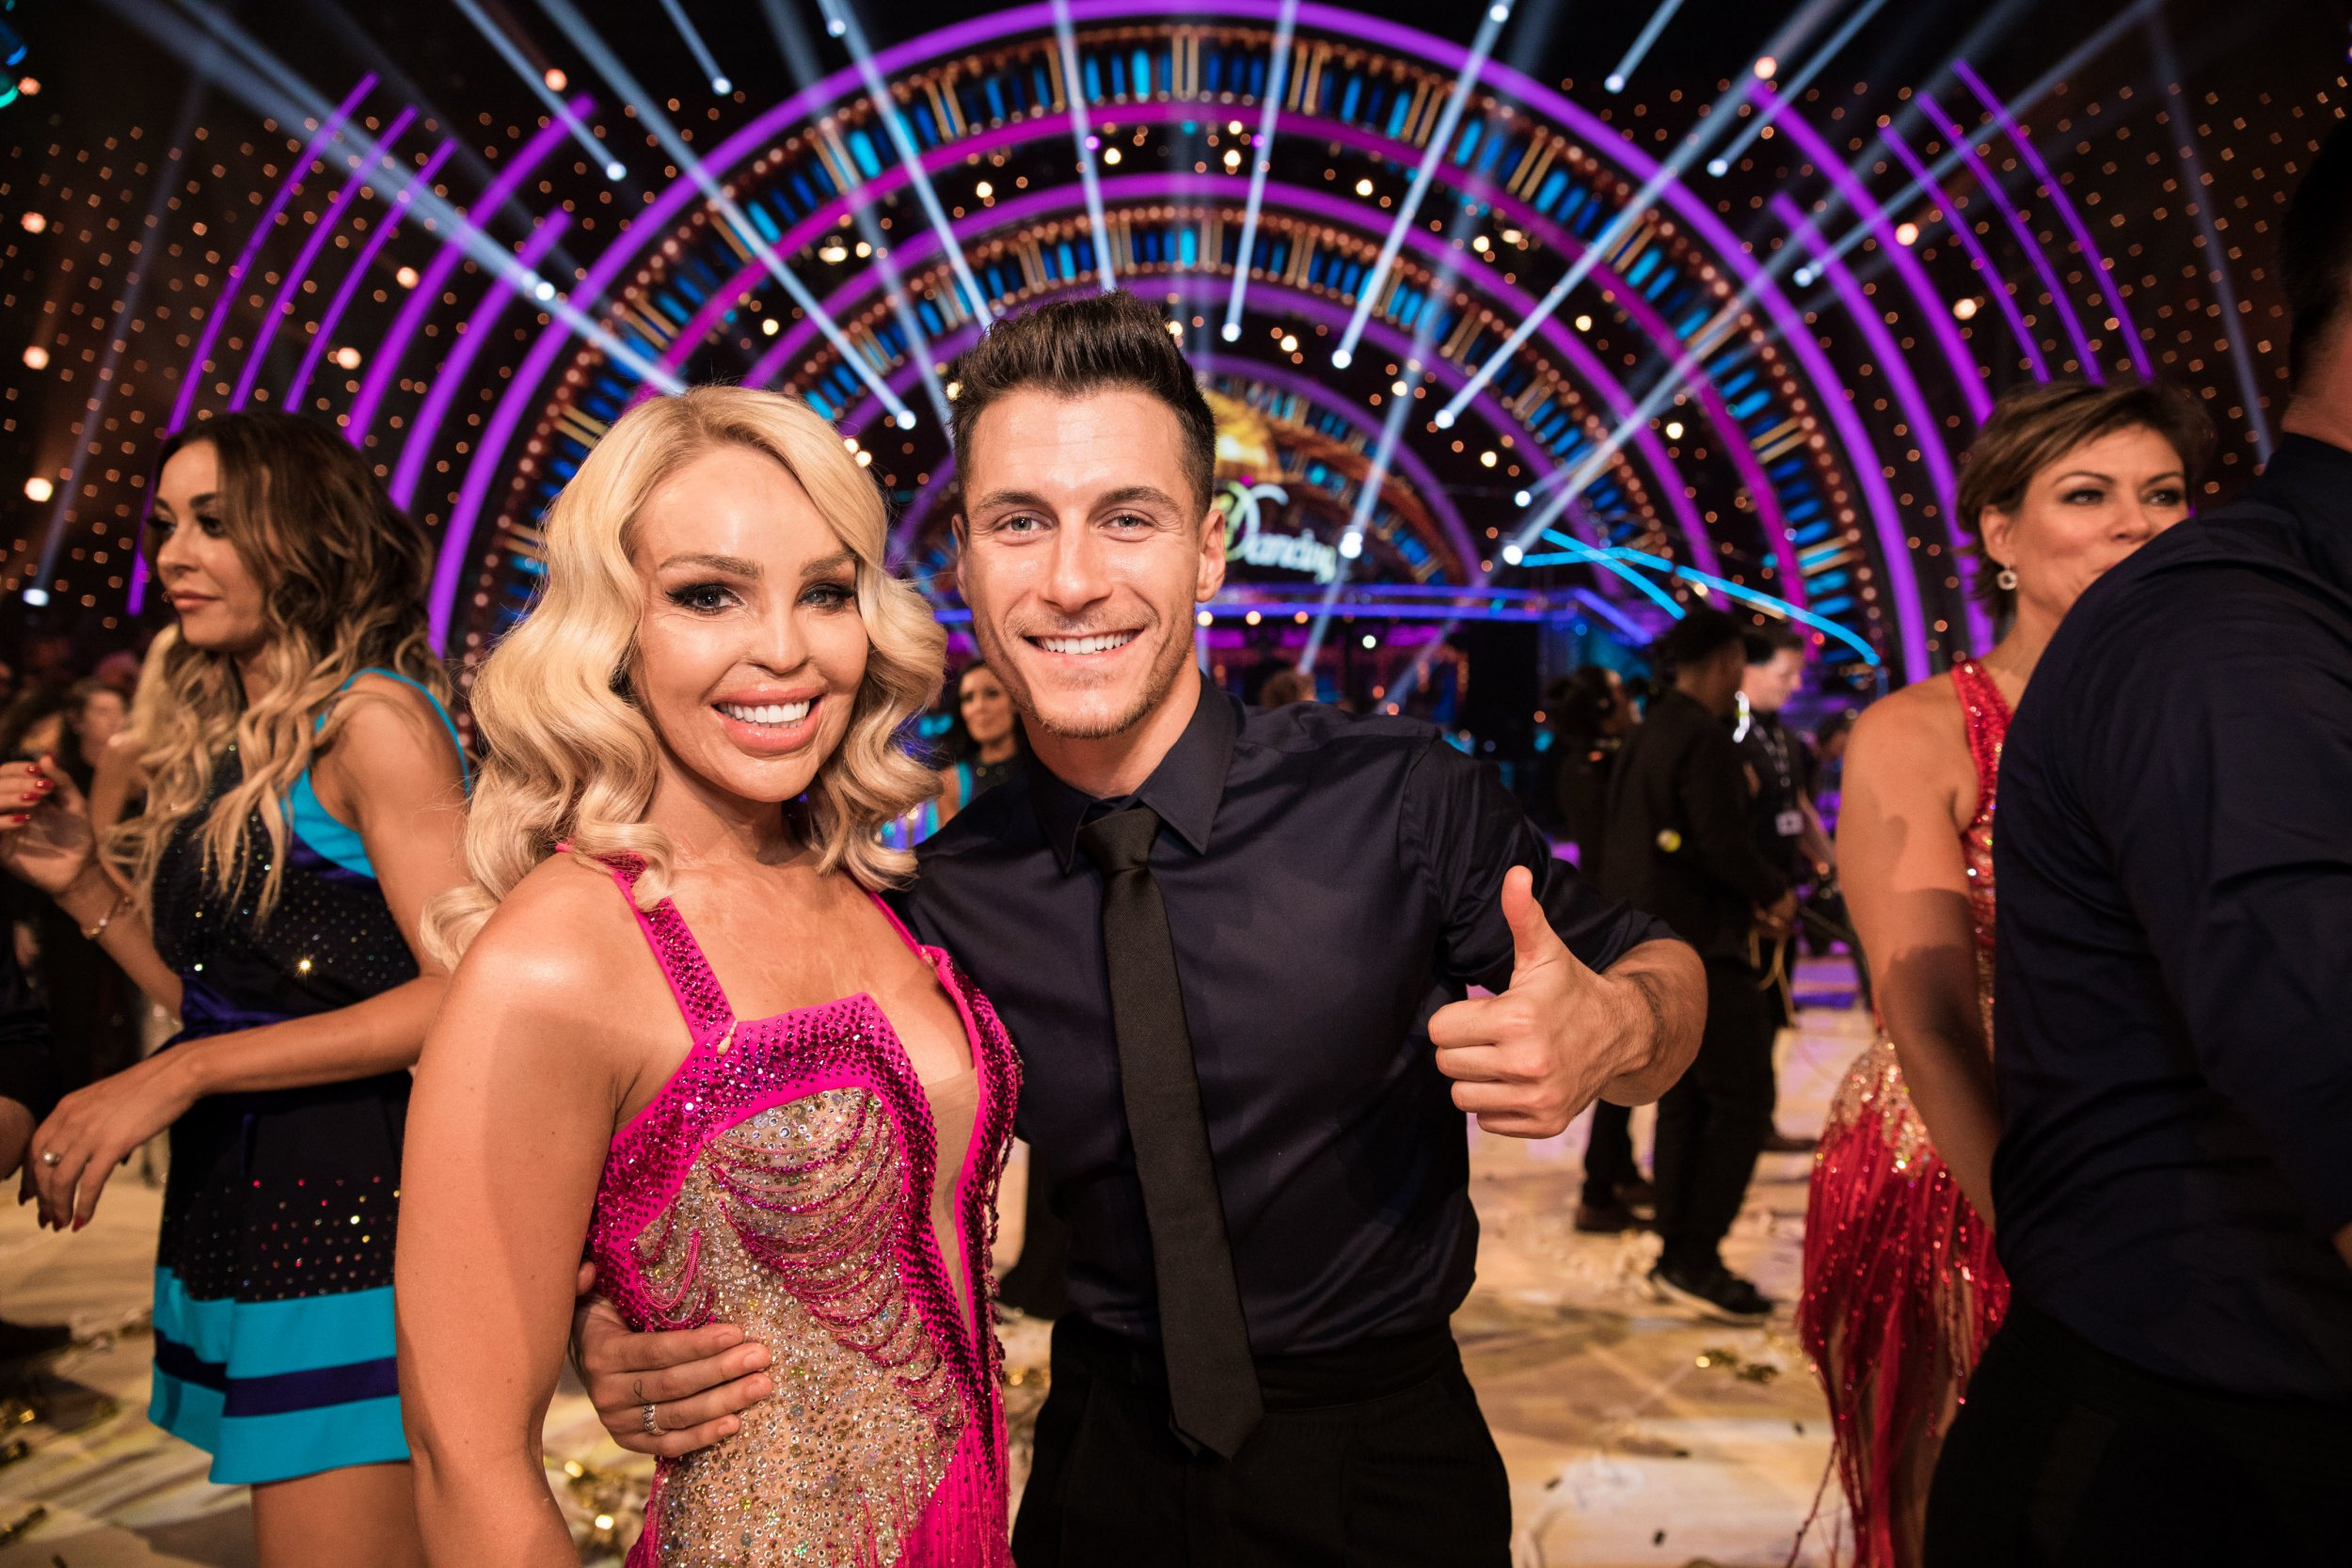 EMBARGOED TO 2100 SATURDAY SEPTEMBER 8 For use in UK, Ireland or Benelux countries only Undated BBC handout photo of Katie Piper and Gorka Marquez during the return of the BBC One show, Strictly Come Dancing. PRESS ASSOCIATION Photo. Issue date: Saturday September 8, 2018. See PA story SHOWBIZ Strictly. Photo credit should read: BBC/PA Wire NOTE TO EDITORS: Not for use more than 21 days after issue. You may use this picture without charge only for the purpose of publicising or reporting on current BBC programming, personnel or other BBC output or activity within 21 days of issue. Any use after that time MUST be cleared through BBC Picture Publicity. Please credit the image to the BBC and any named photographer or independent programme maker, as described in the caption.